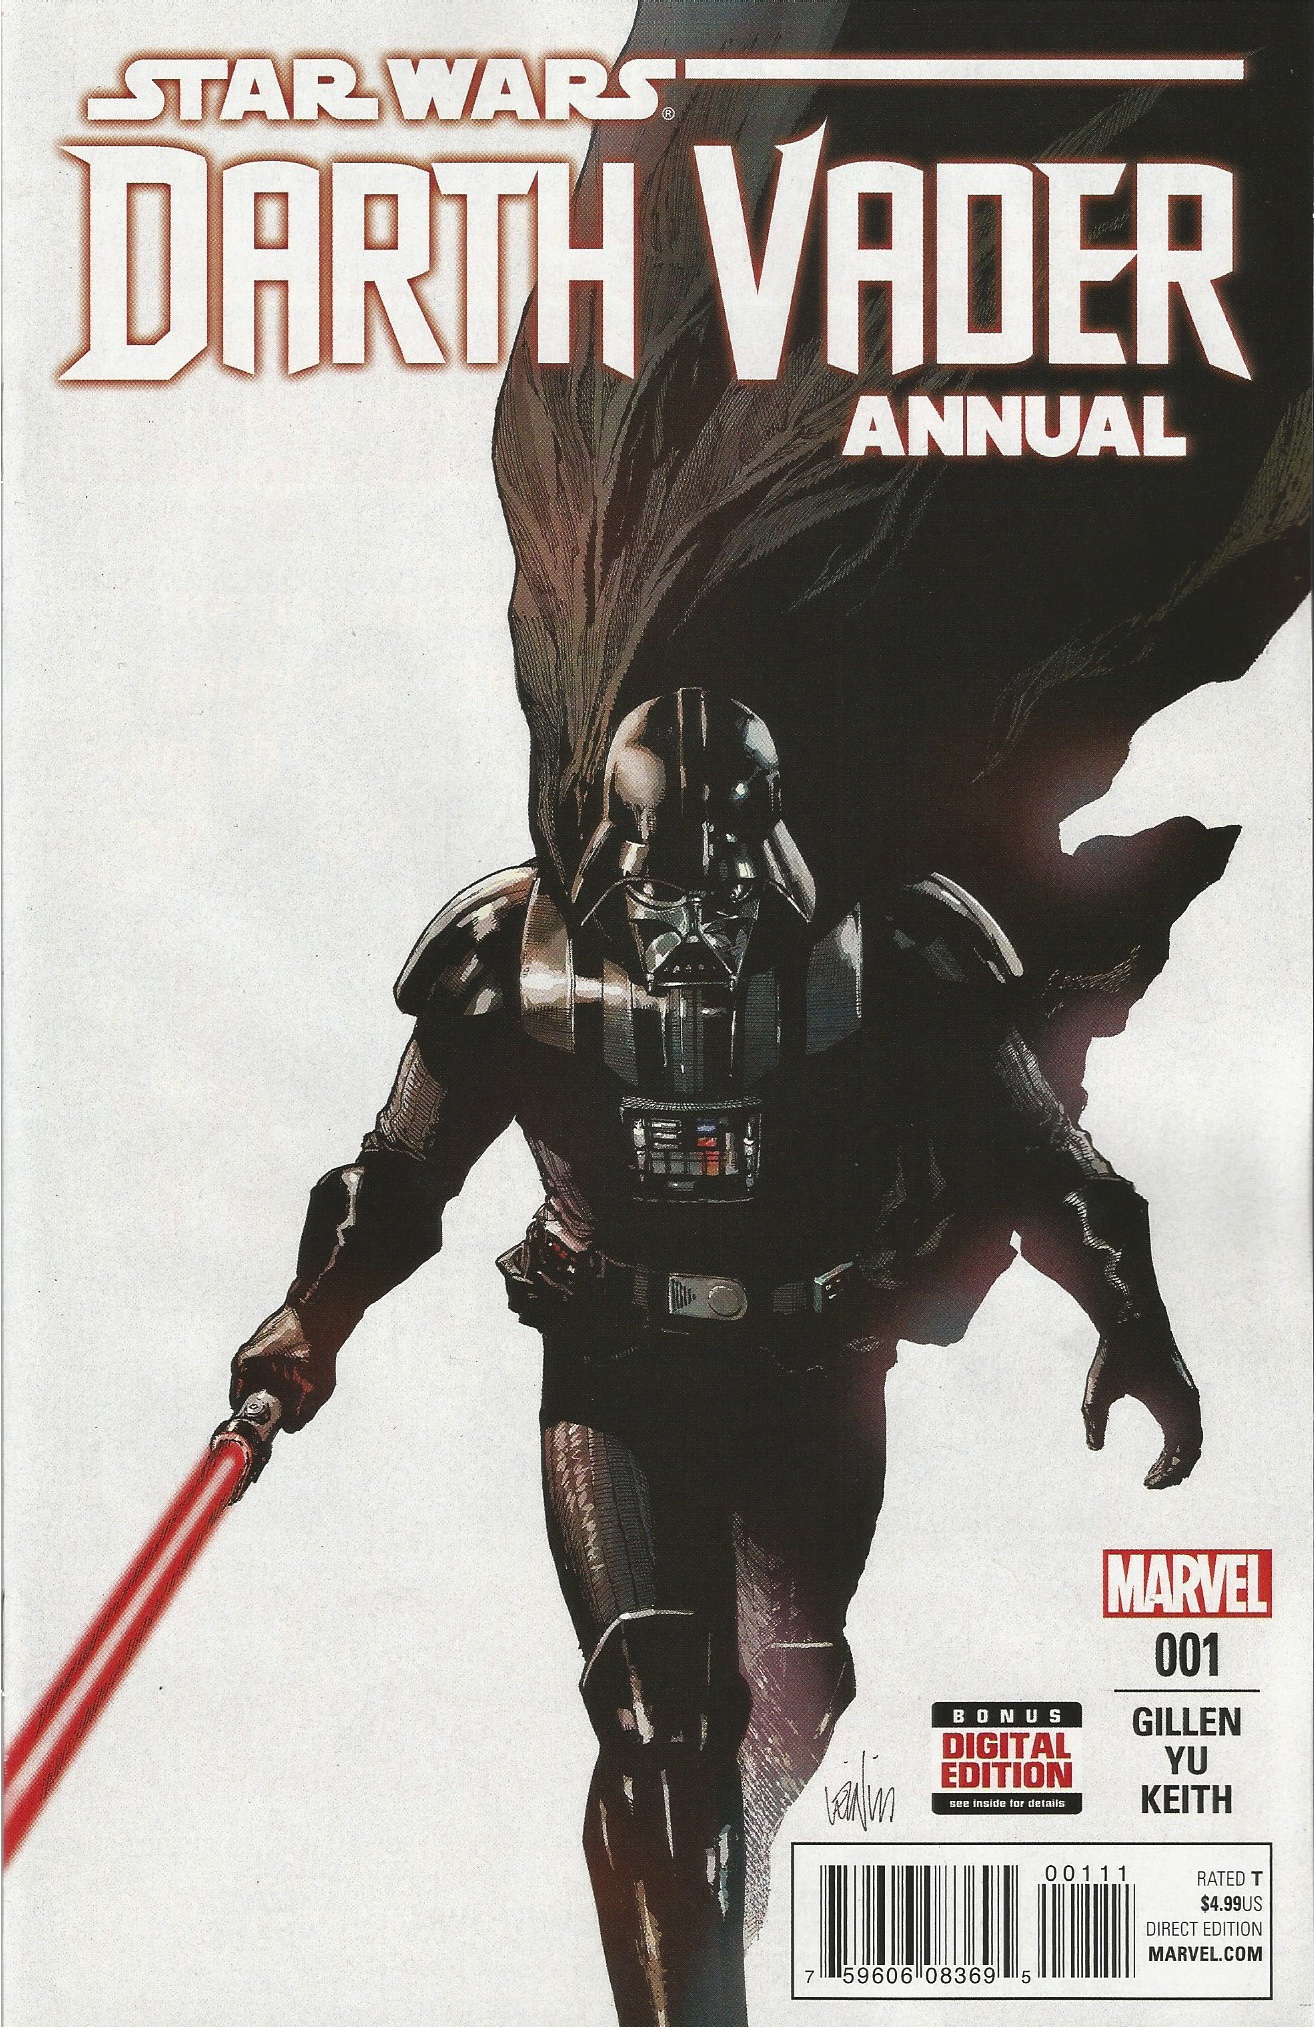 COMIC REVIEW: Darth Vader Annual 1 - Who We Serve